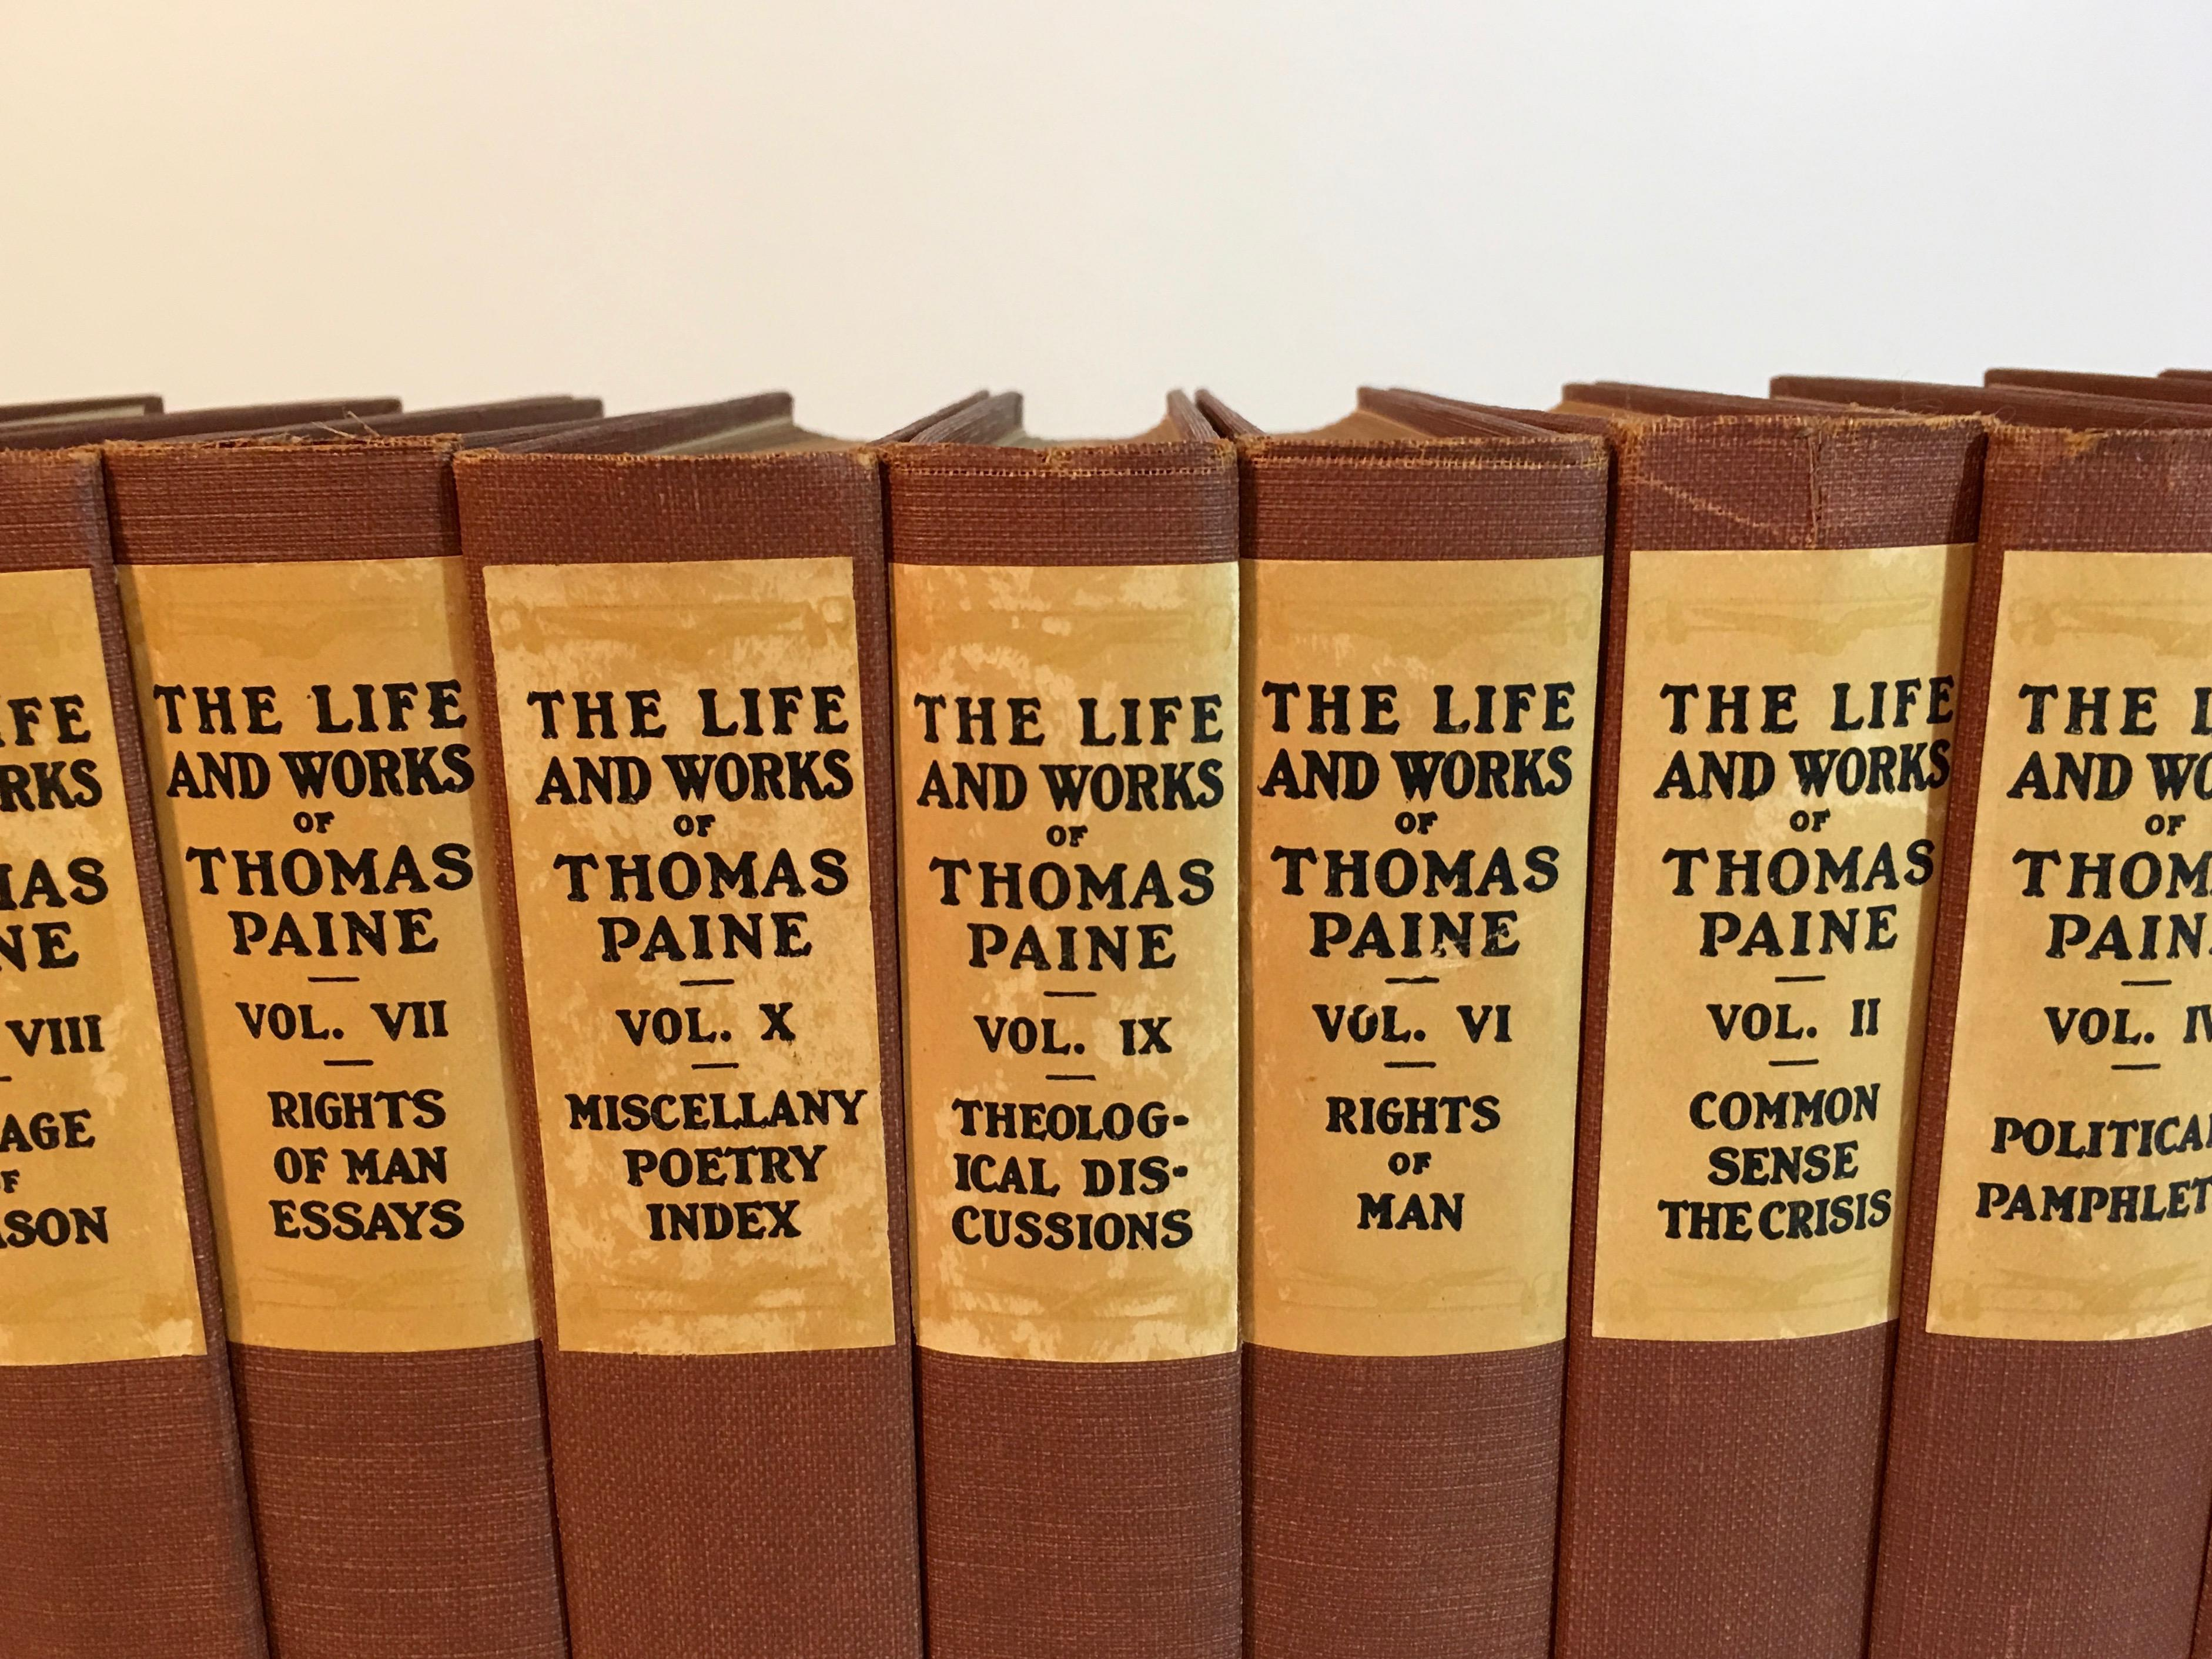 an introduction to the life of thomas paine I went back to them time and again, just as i have done since my boyhood days thomas edison from the introduction to 'the life and works of thomas paine, vol i', 1925 today belongs to barack obama but it also belongs to thomas paine when our new president says that his election proves the dream of our founders.